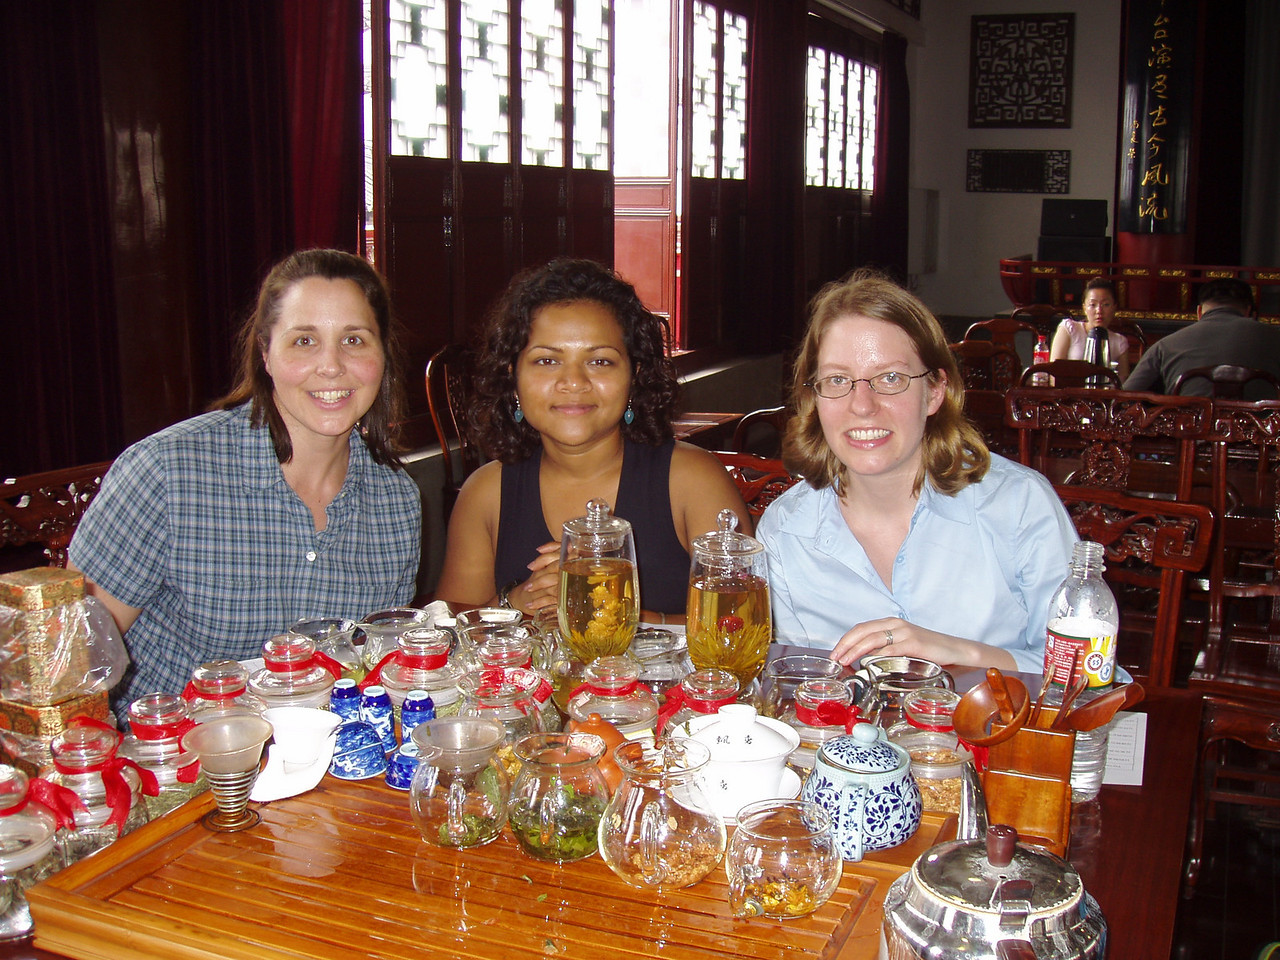 Tea ceremony, Kristie, Mina and Kathy again.<br /> Dana and I got tired of the crowds and ditched...